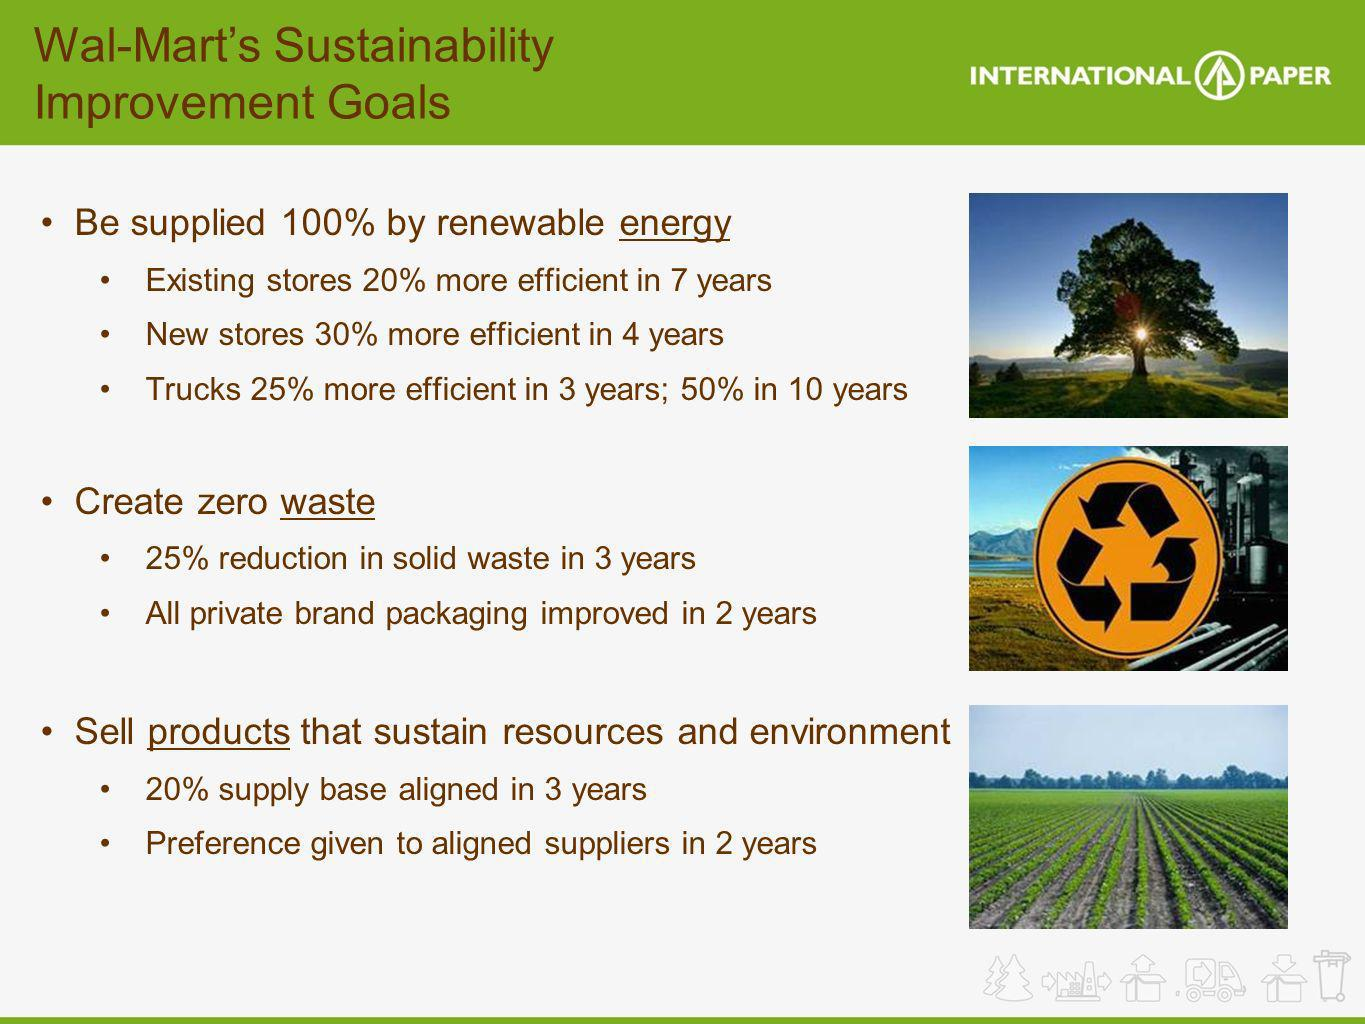 Wal-Mart's Sustainability Improvement Goals